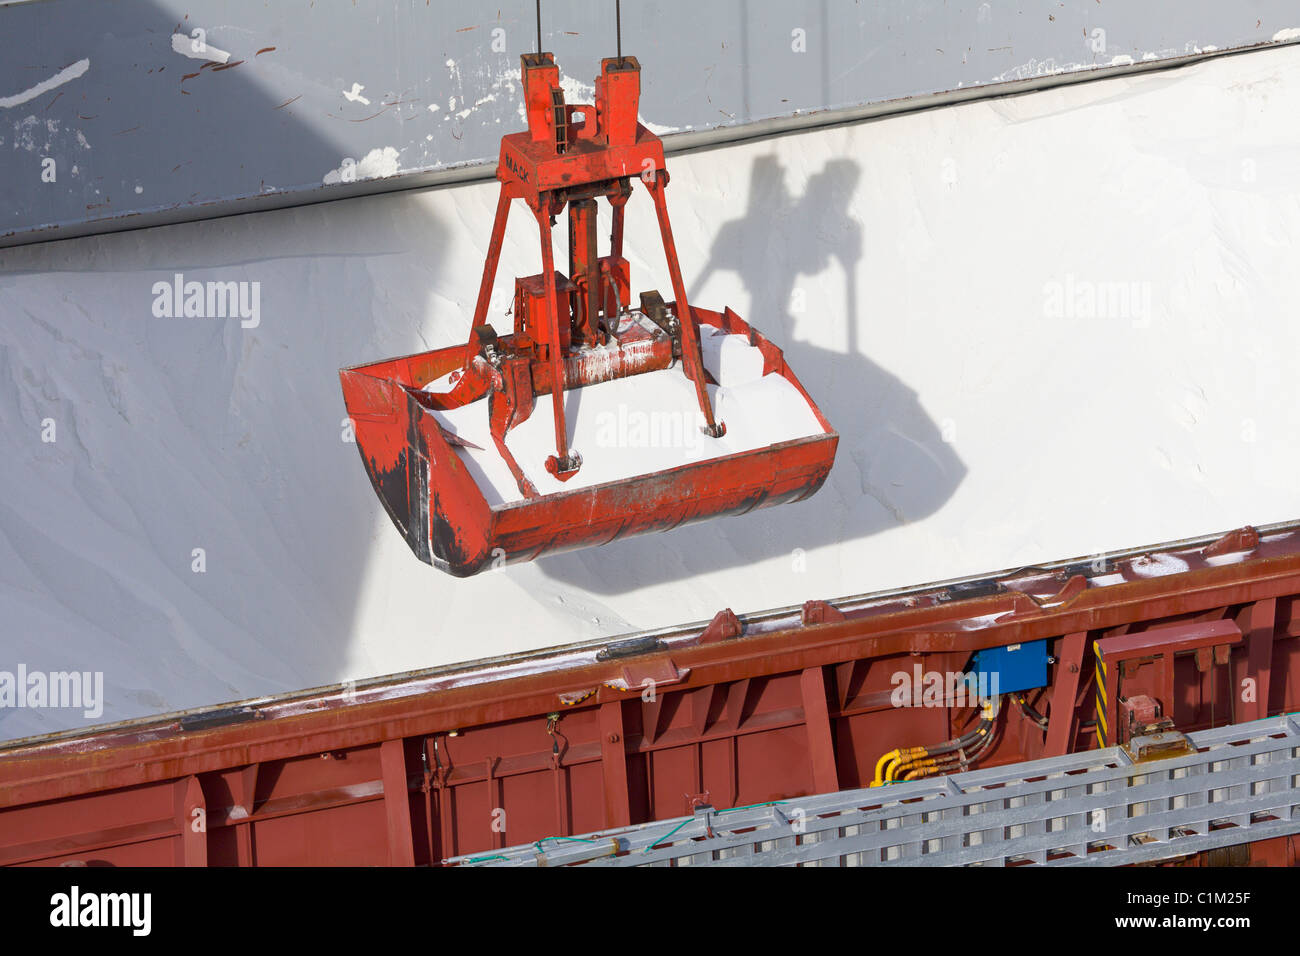 Cargo ship being unloaded at the port of Salaverry, Trujillo, Peru Stock Photo